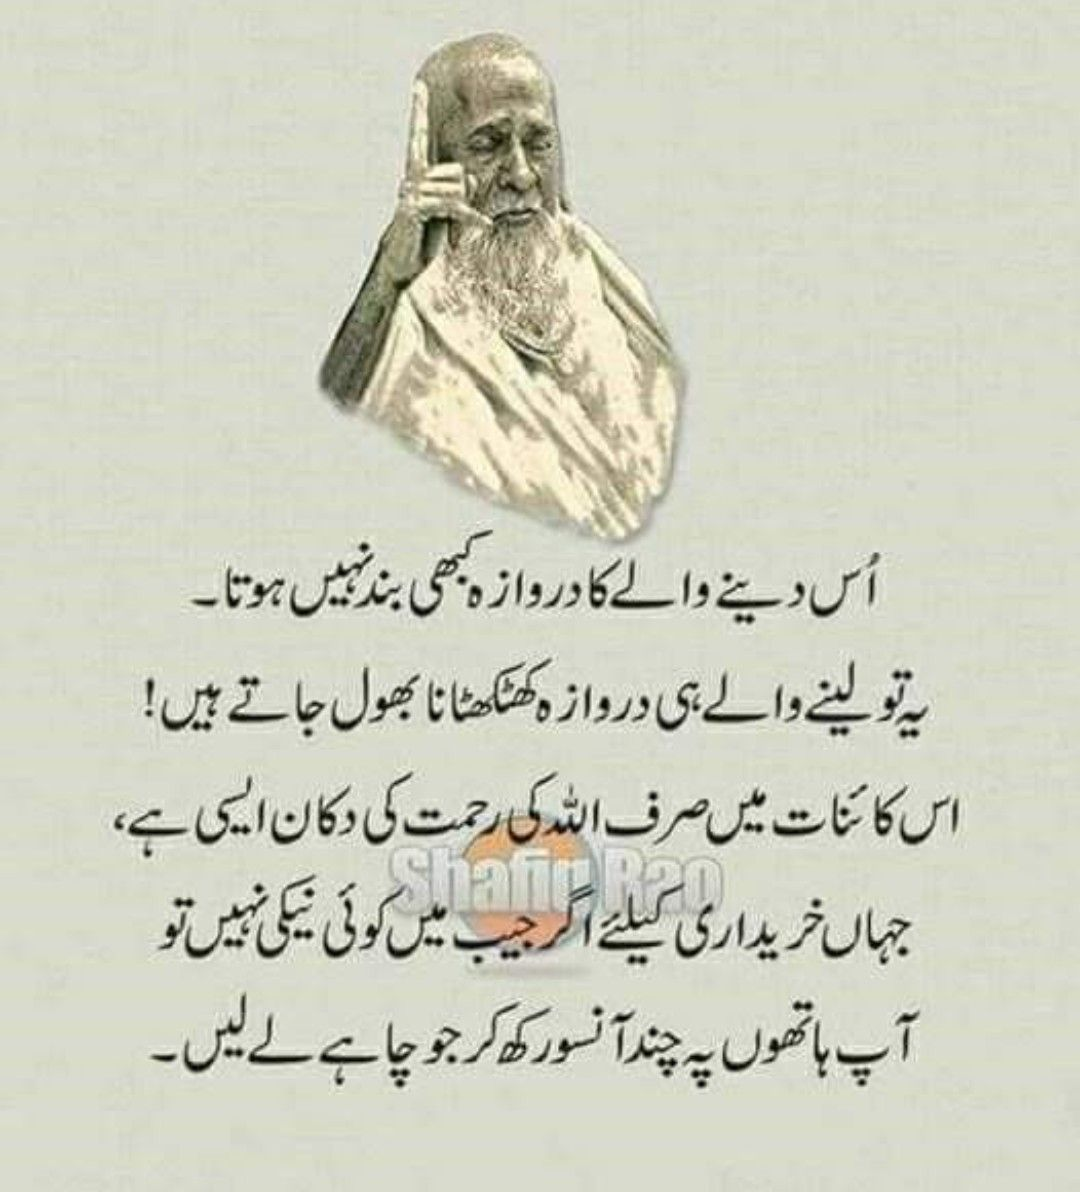 Pin by Ayesha Imran on Advice (With images) Urdu quotes